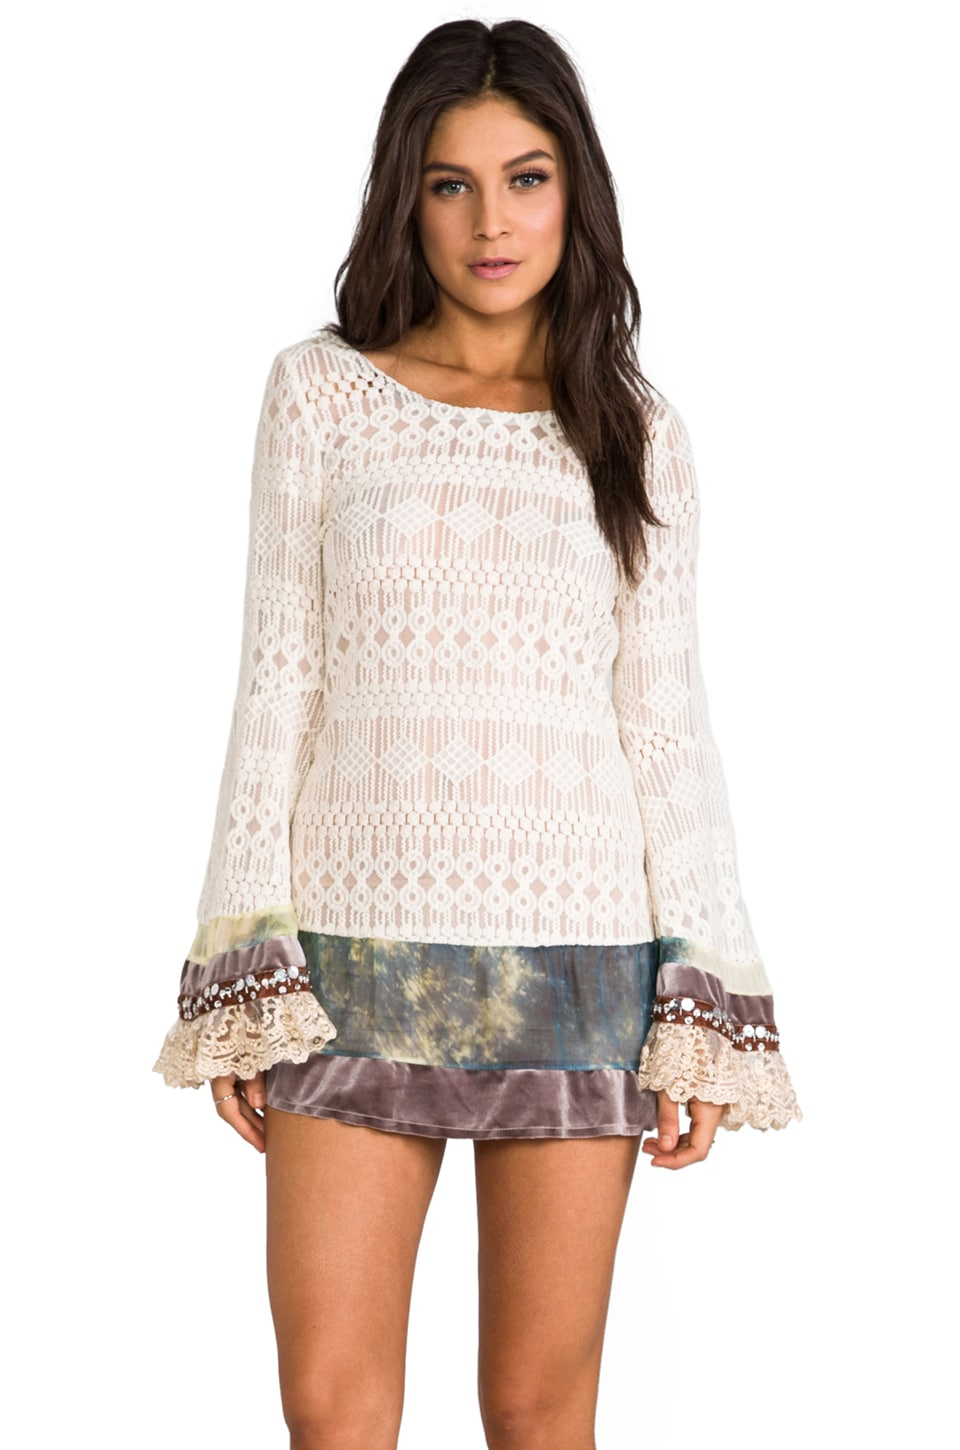 Gypsy Junkies Mimi Mini Lace Dress w/ Bell Sleeves in Boheme Natural